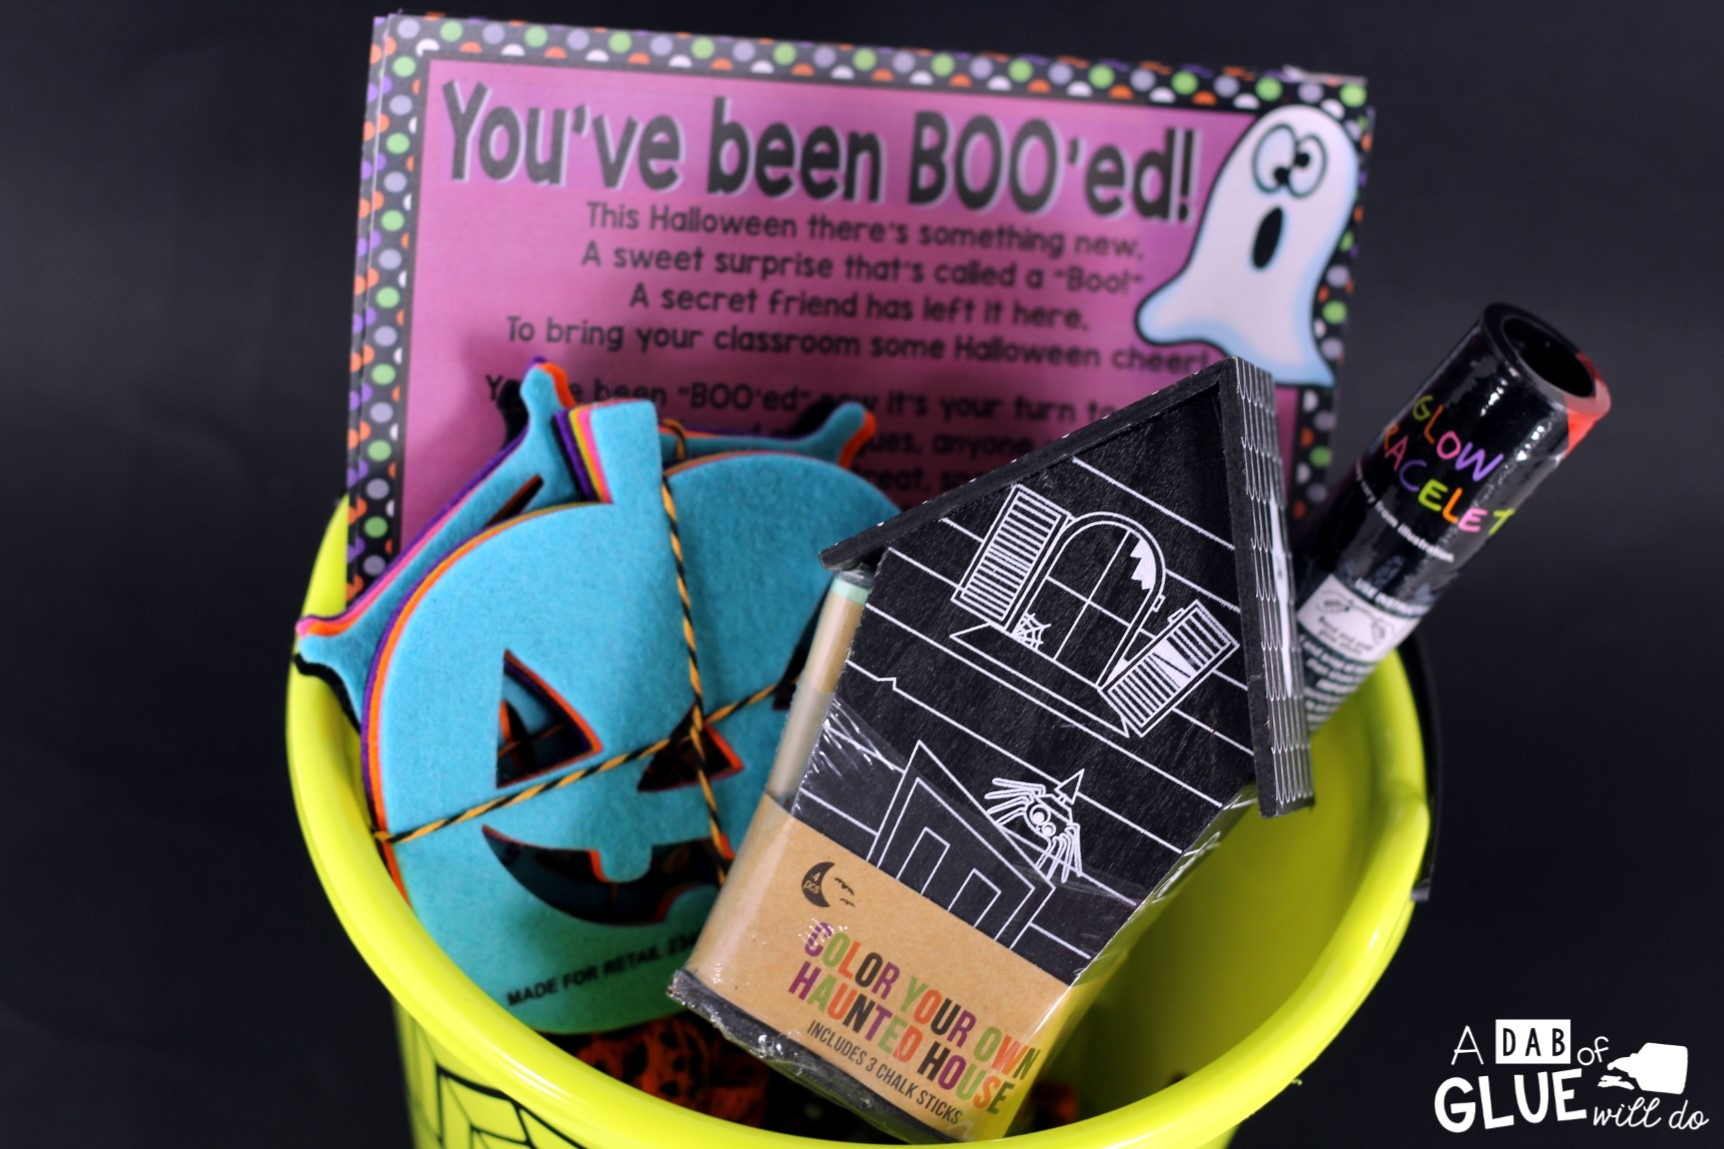 Boo! Basket is the perfect way to start the Holiday season. Spread Halloween cheer among the faculty and staff at your school